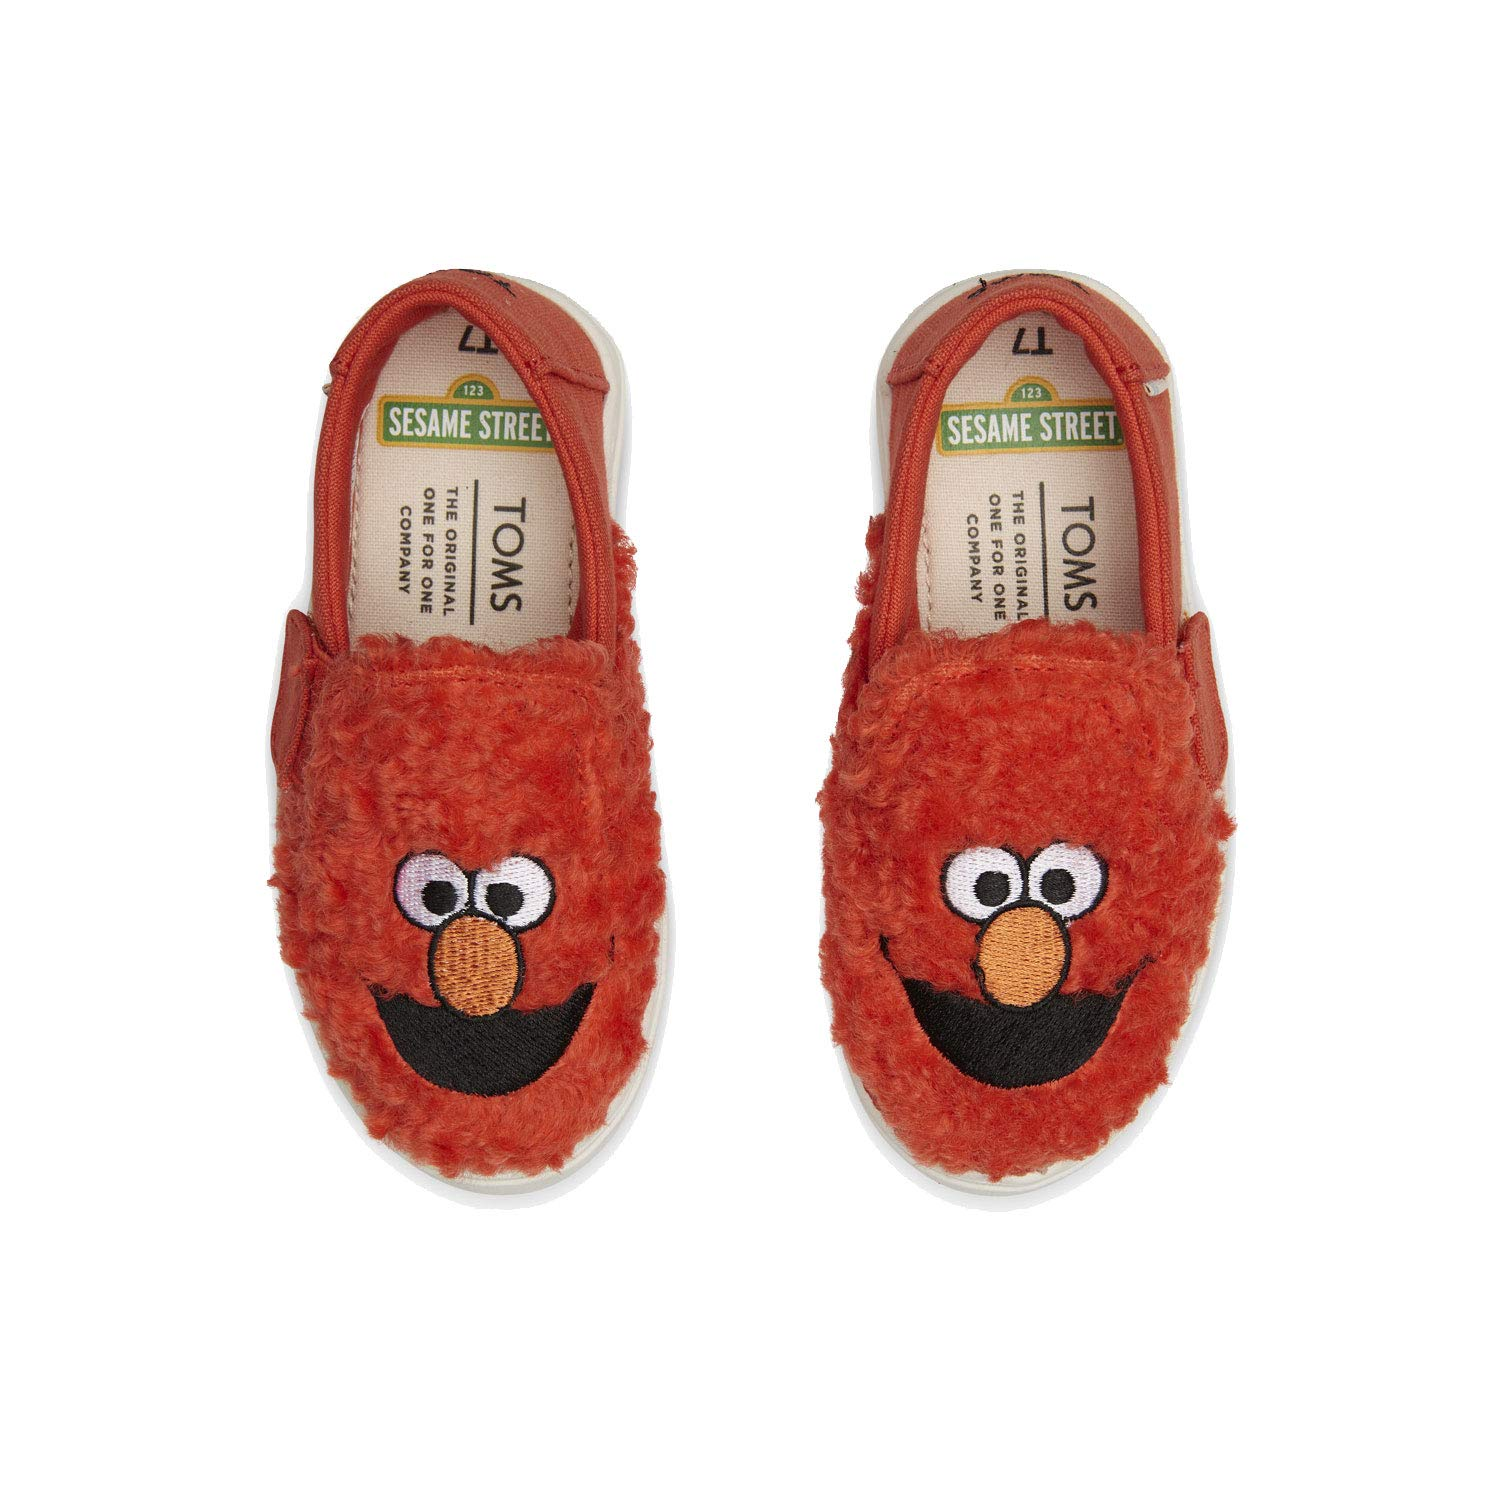 TOMS Sesame Street X Elmo Face Faux Shearling Tiny Luca Slip-Ons 10013649 (Size: 9) Red by TOMS (Image #3)